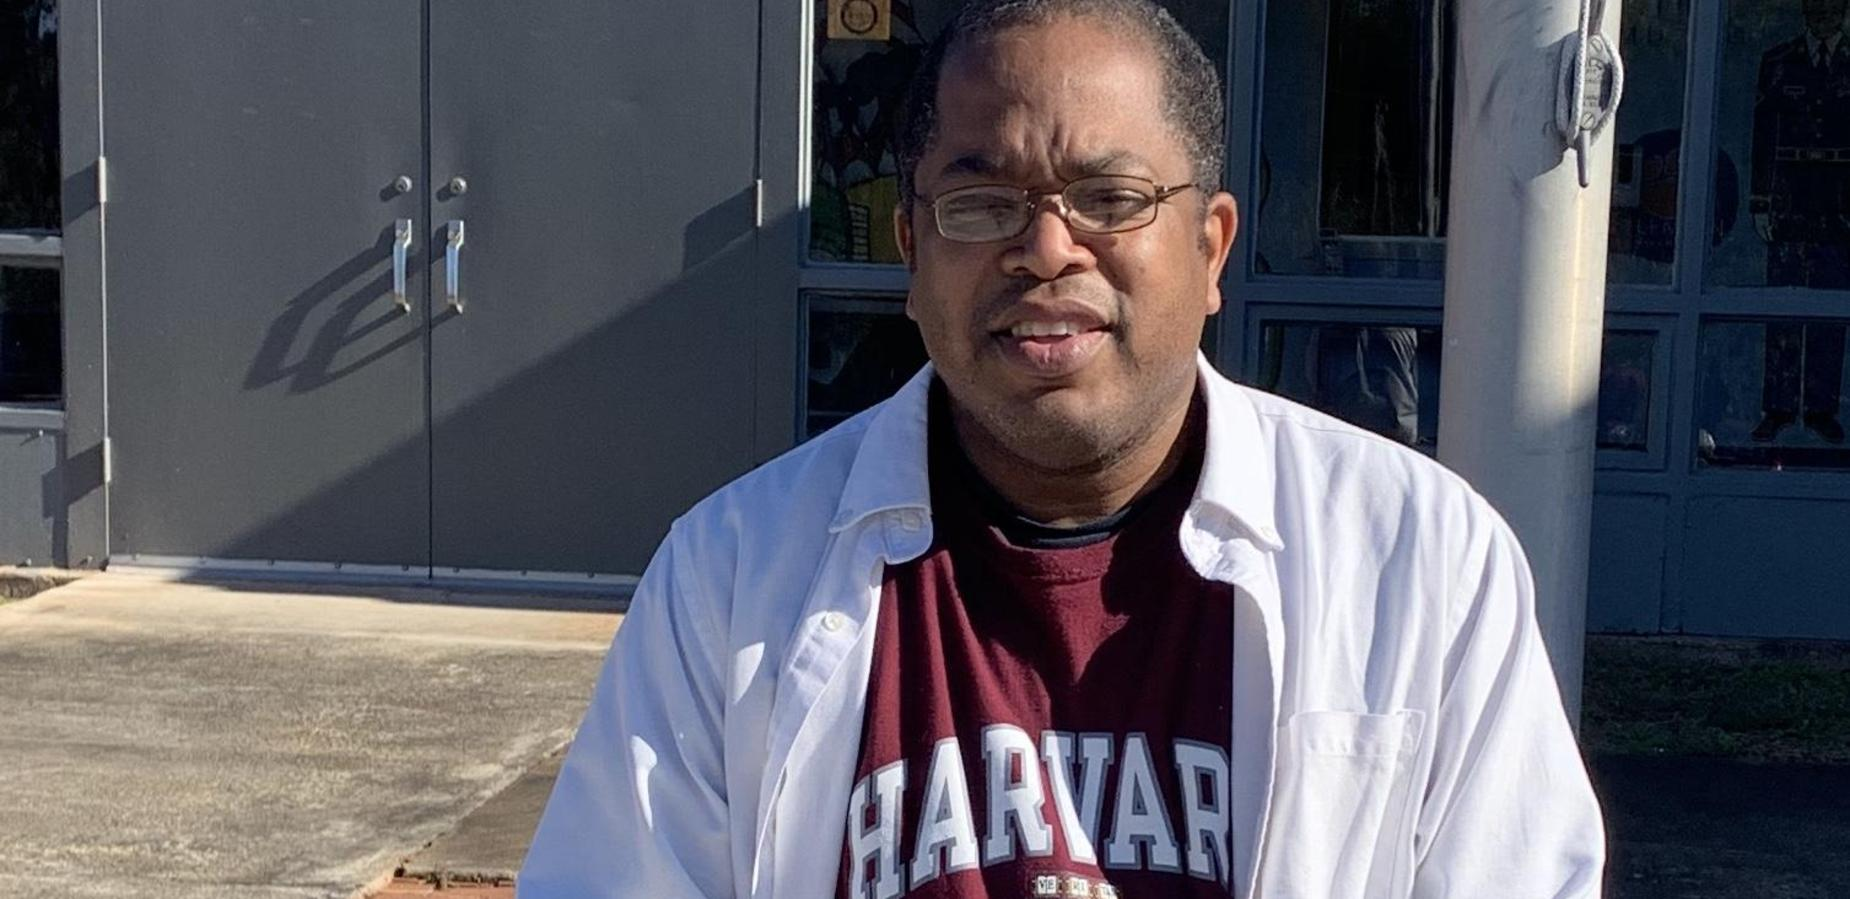 Mr. Holmes in Harvard college gear